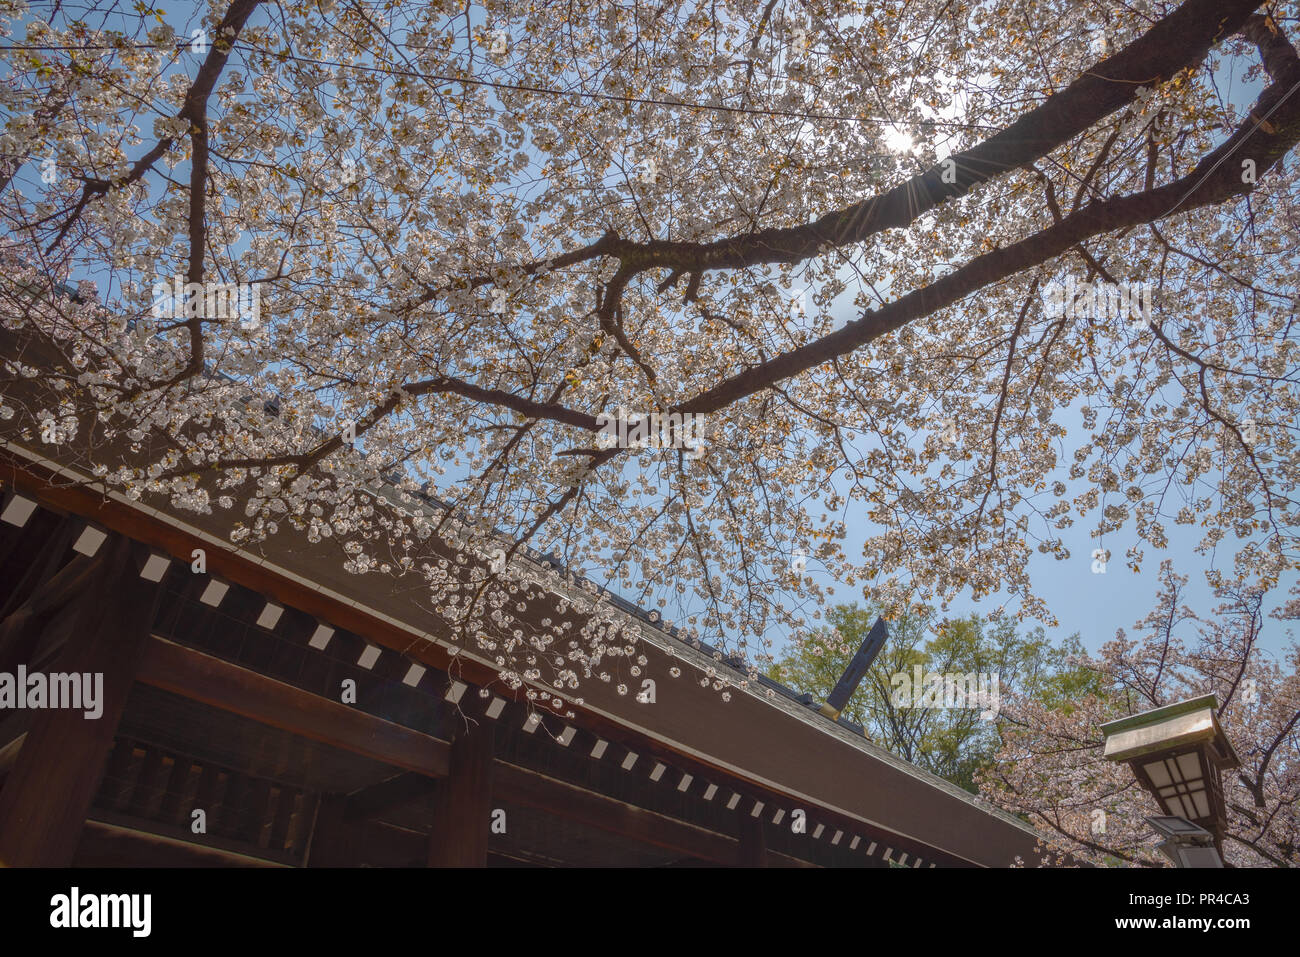 Cherry blossom at Yasukuni Shrine. a famous Tourist spot in Tokyo, Japan. - Stock Image